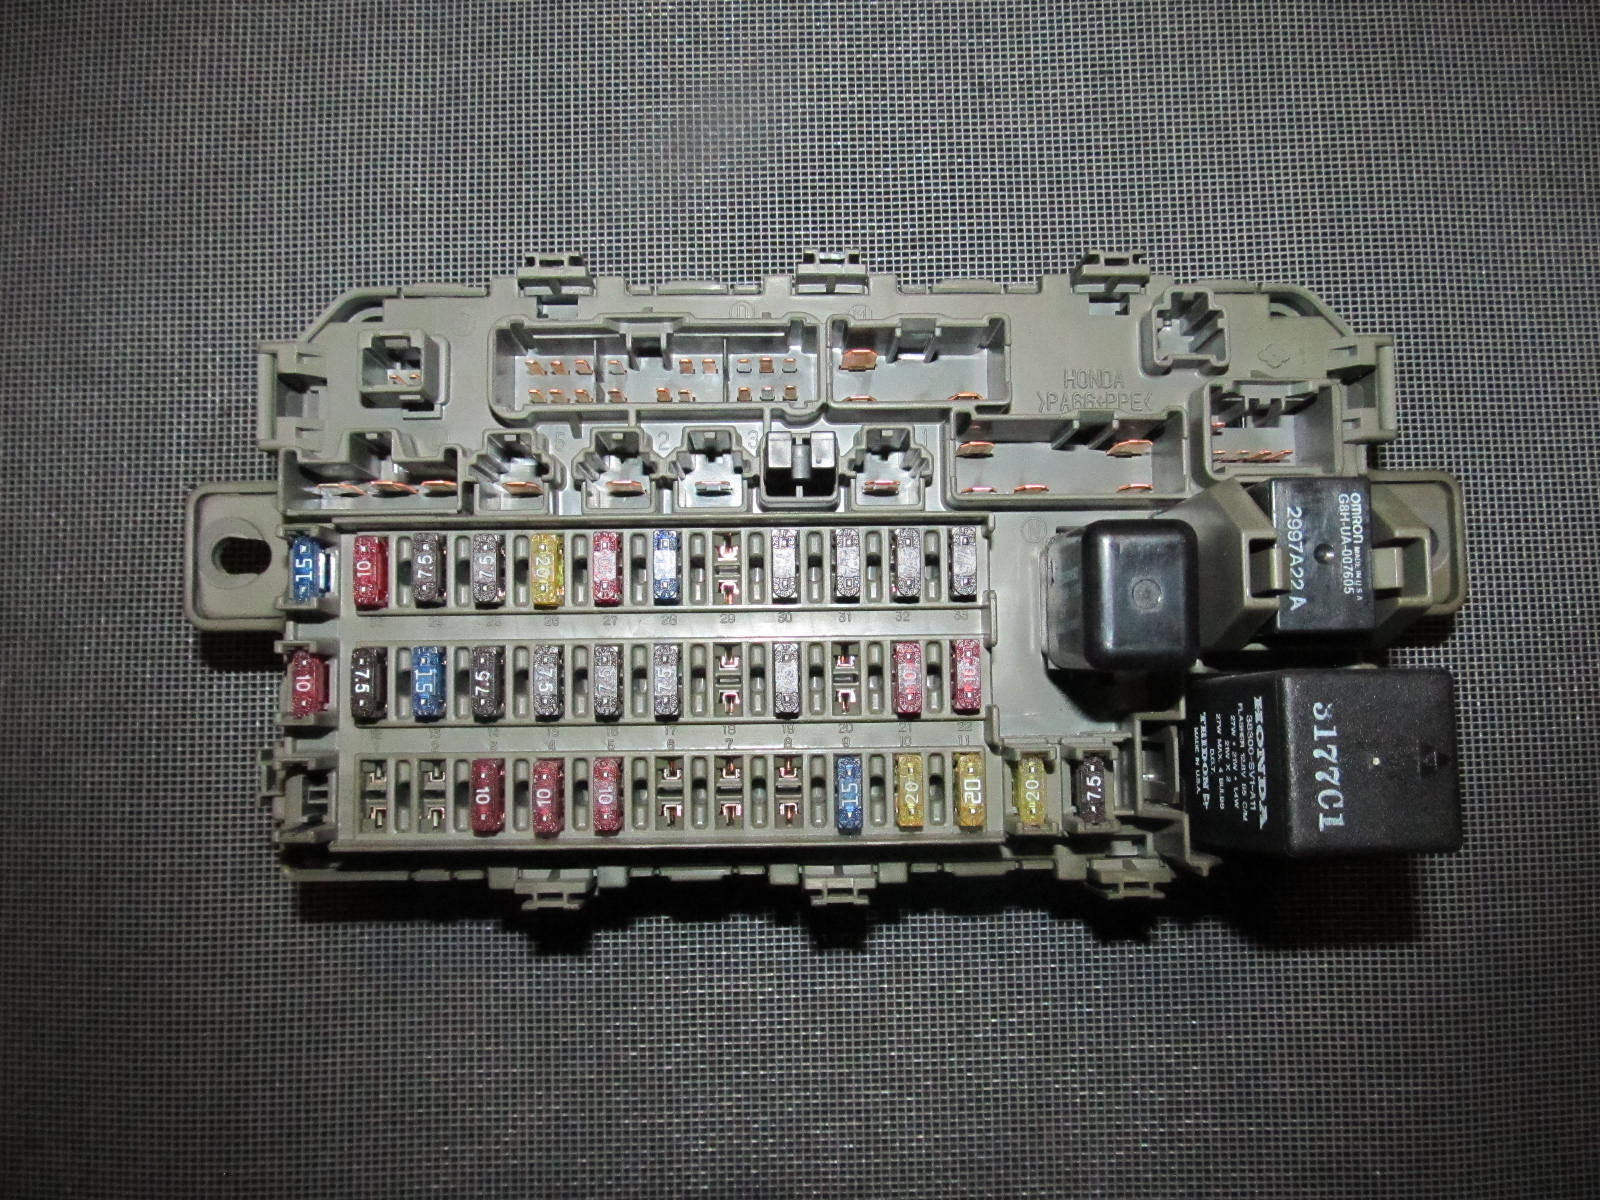 96 97 98 99 00 honda civic oem interior fuse box with ... 1990 honda civic fuse box diagram 00 honda civic fuse box